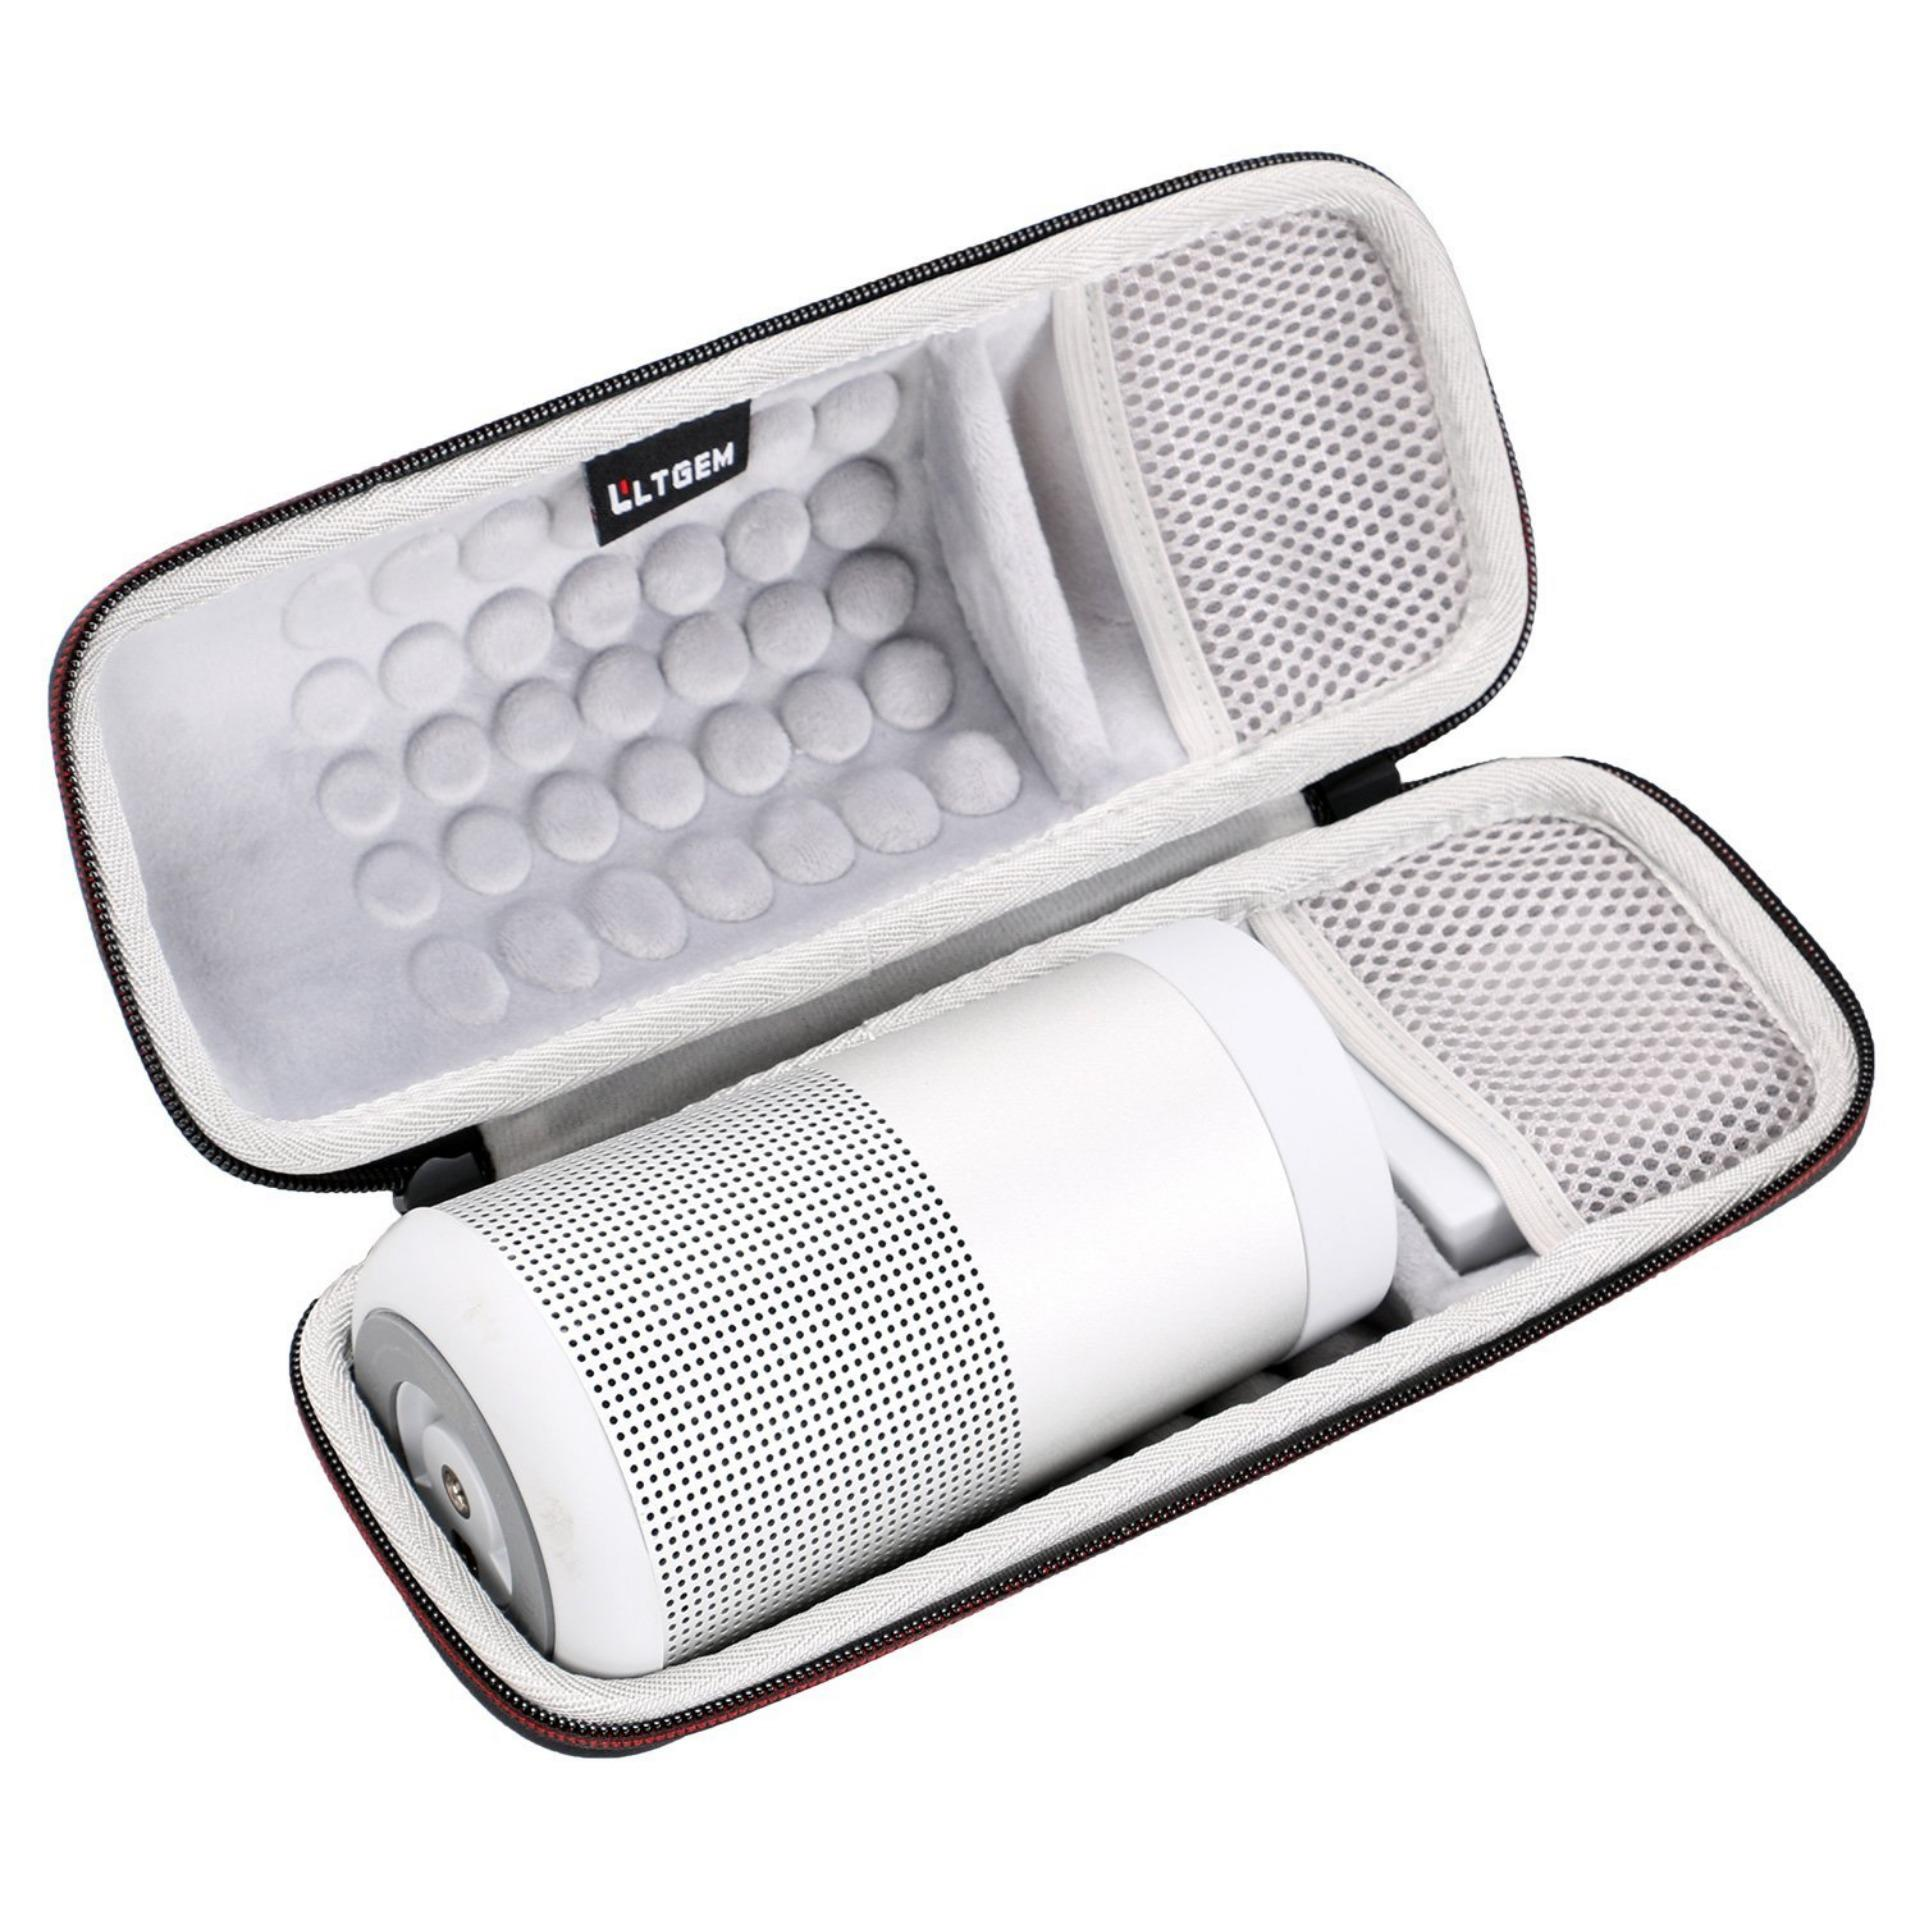 Ltgem Portable Hard Eva Case Protective Storage Carrying Bag Case For Revolve Bluetooth Speaker With Mesh Pocket Intl Ltgem Discount